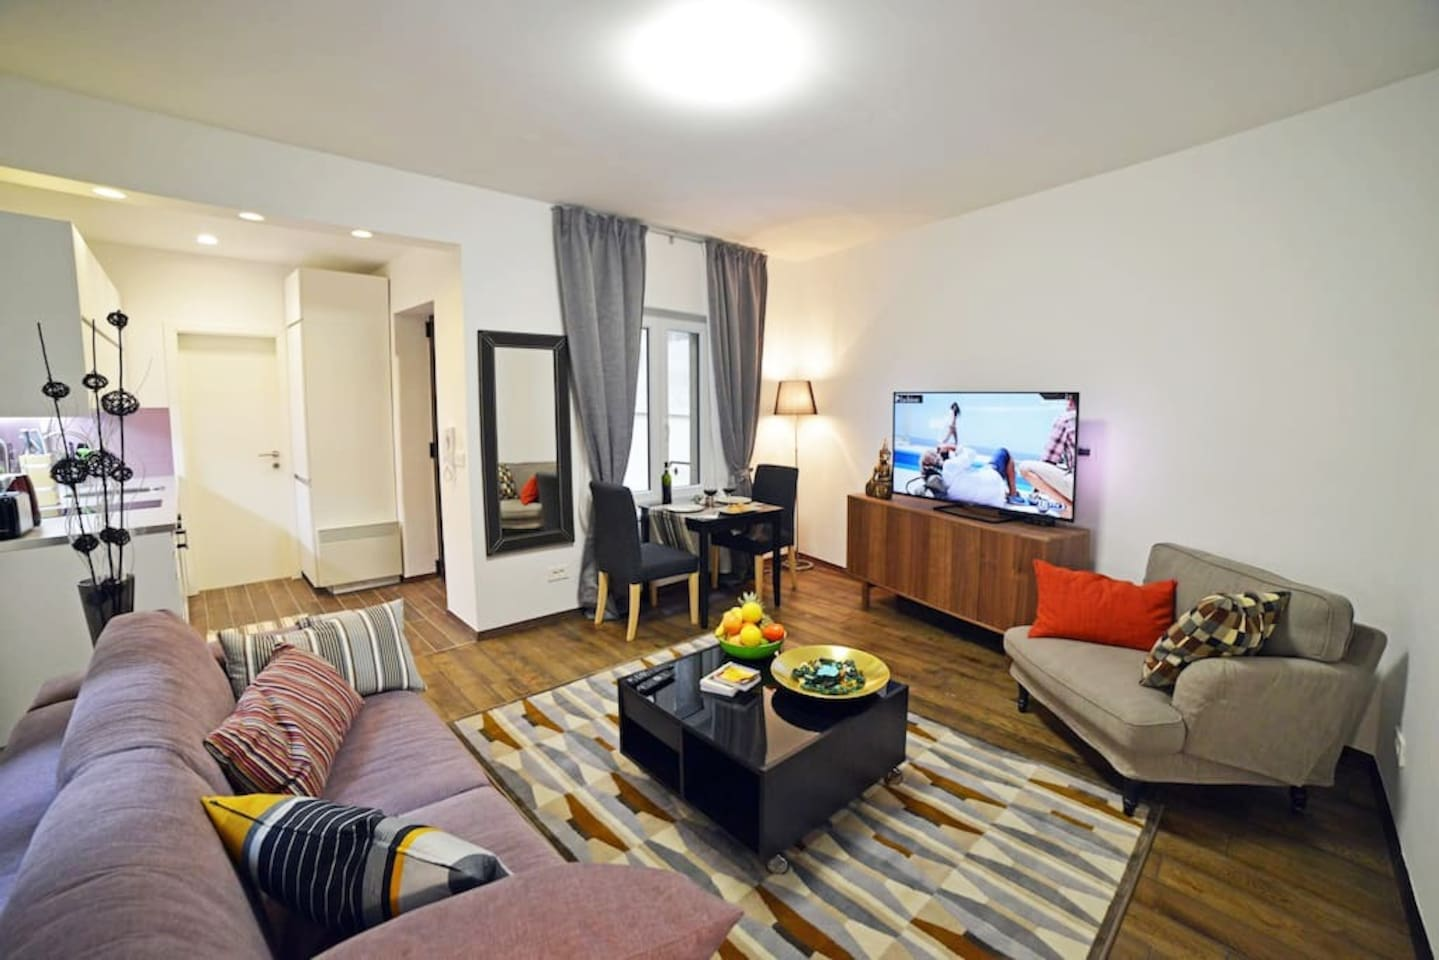 Cosy living room - After all day sightseeing relax in comfort of home outside of your home :)